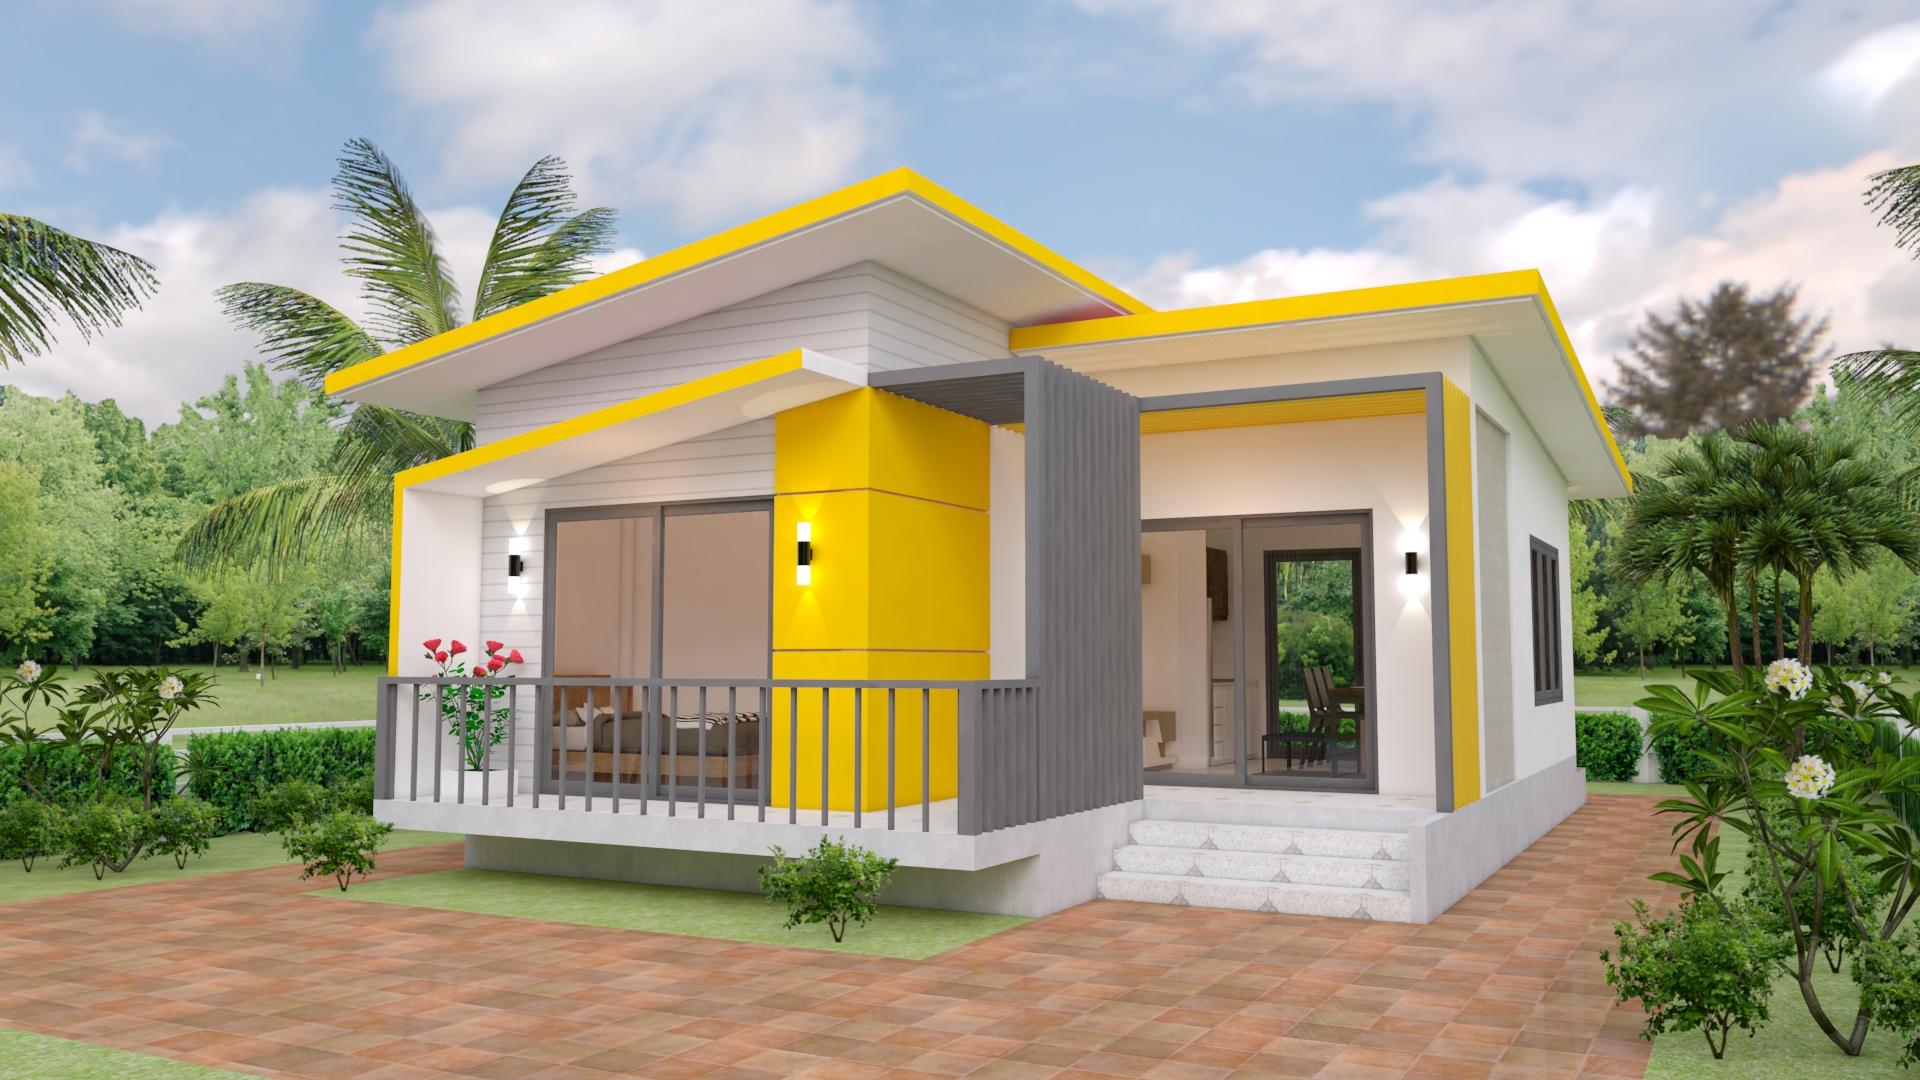 House Plans 7.5x11 with 2 Bedrooms Full plans 1 - 34+ Small House Design Plans 2 Bedroom Pictures